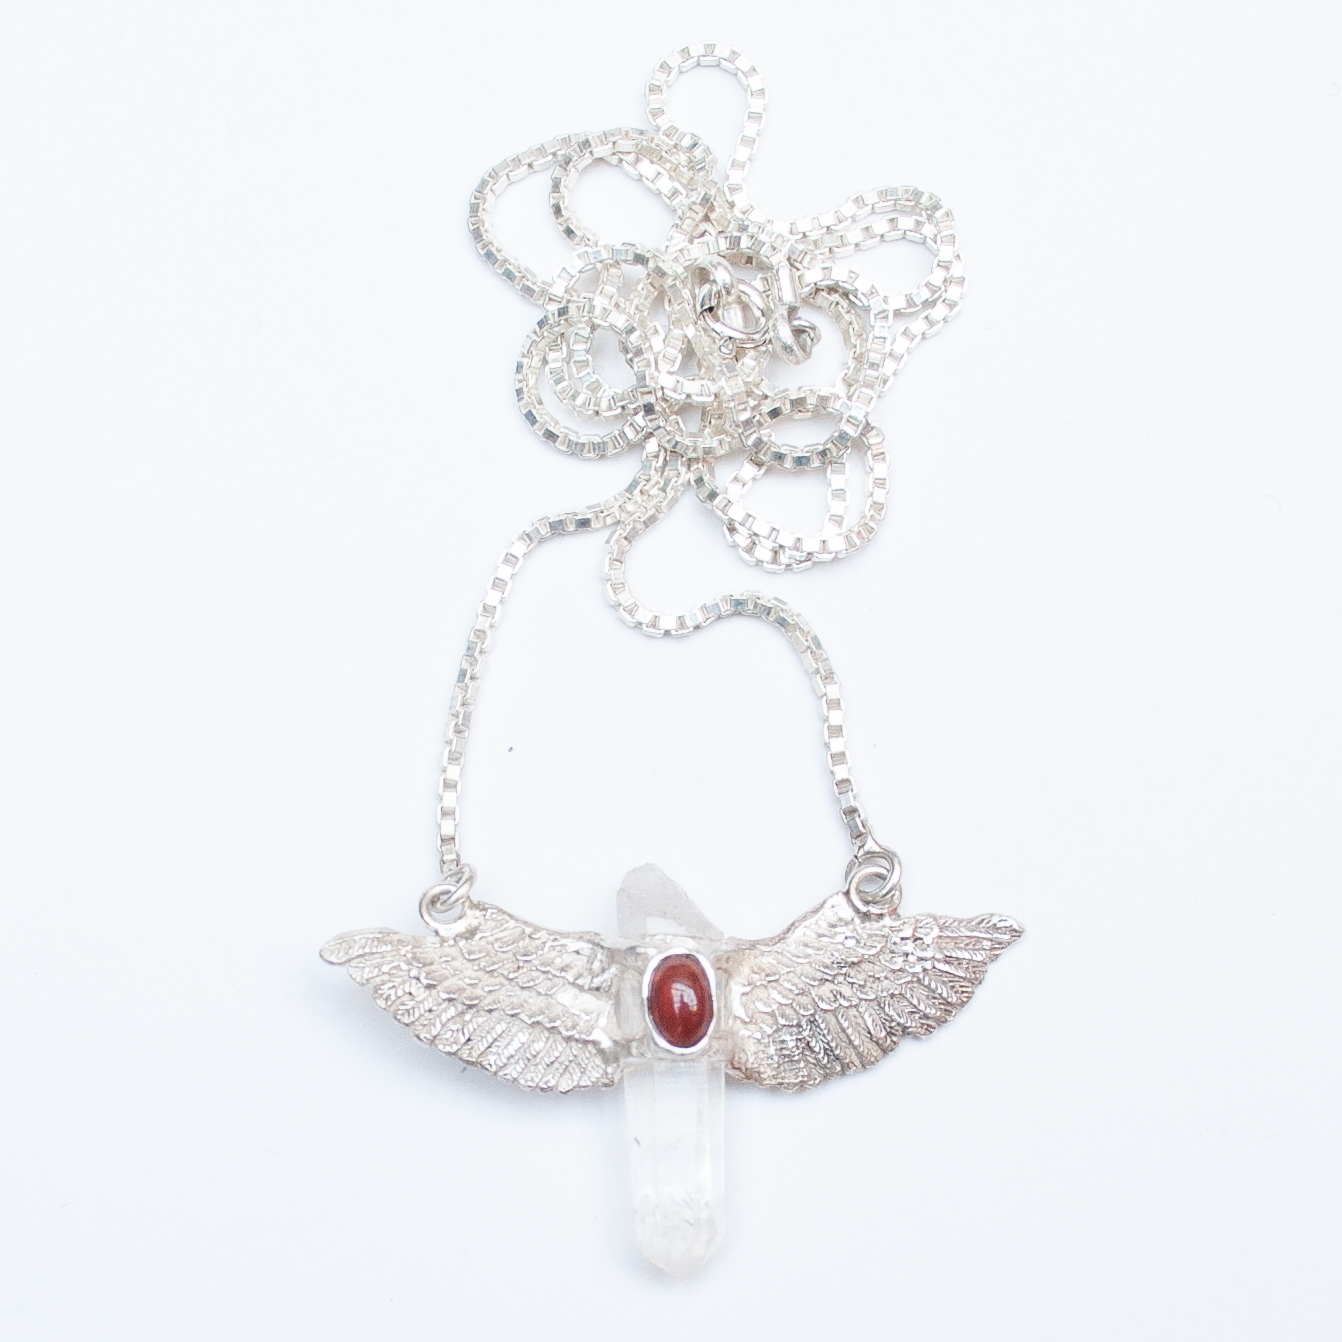 Clear Quartz & Red Garnet Sterling Silver winged necklace with chain